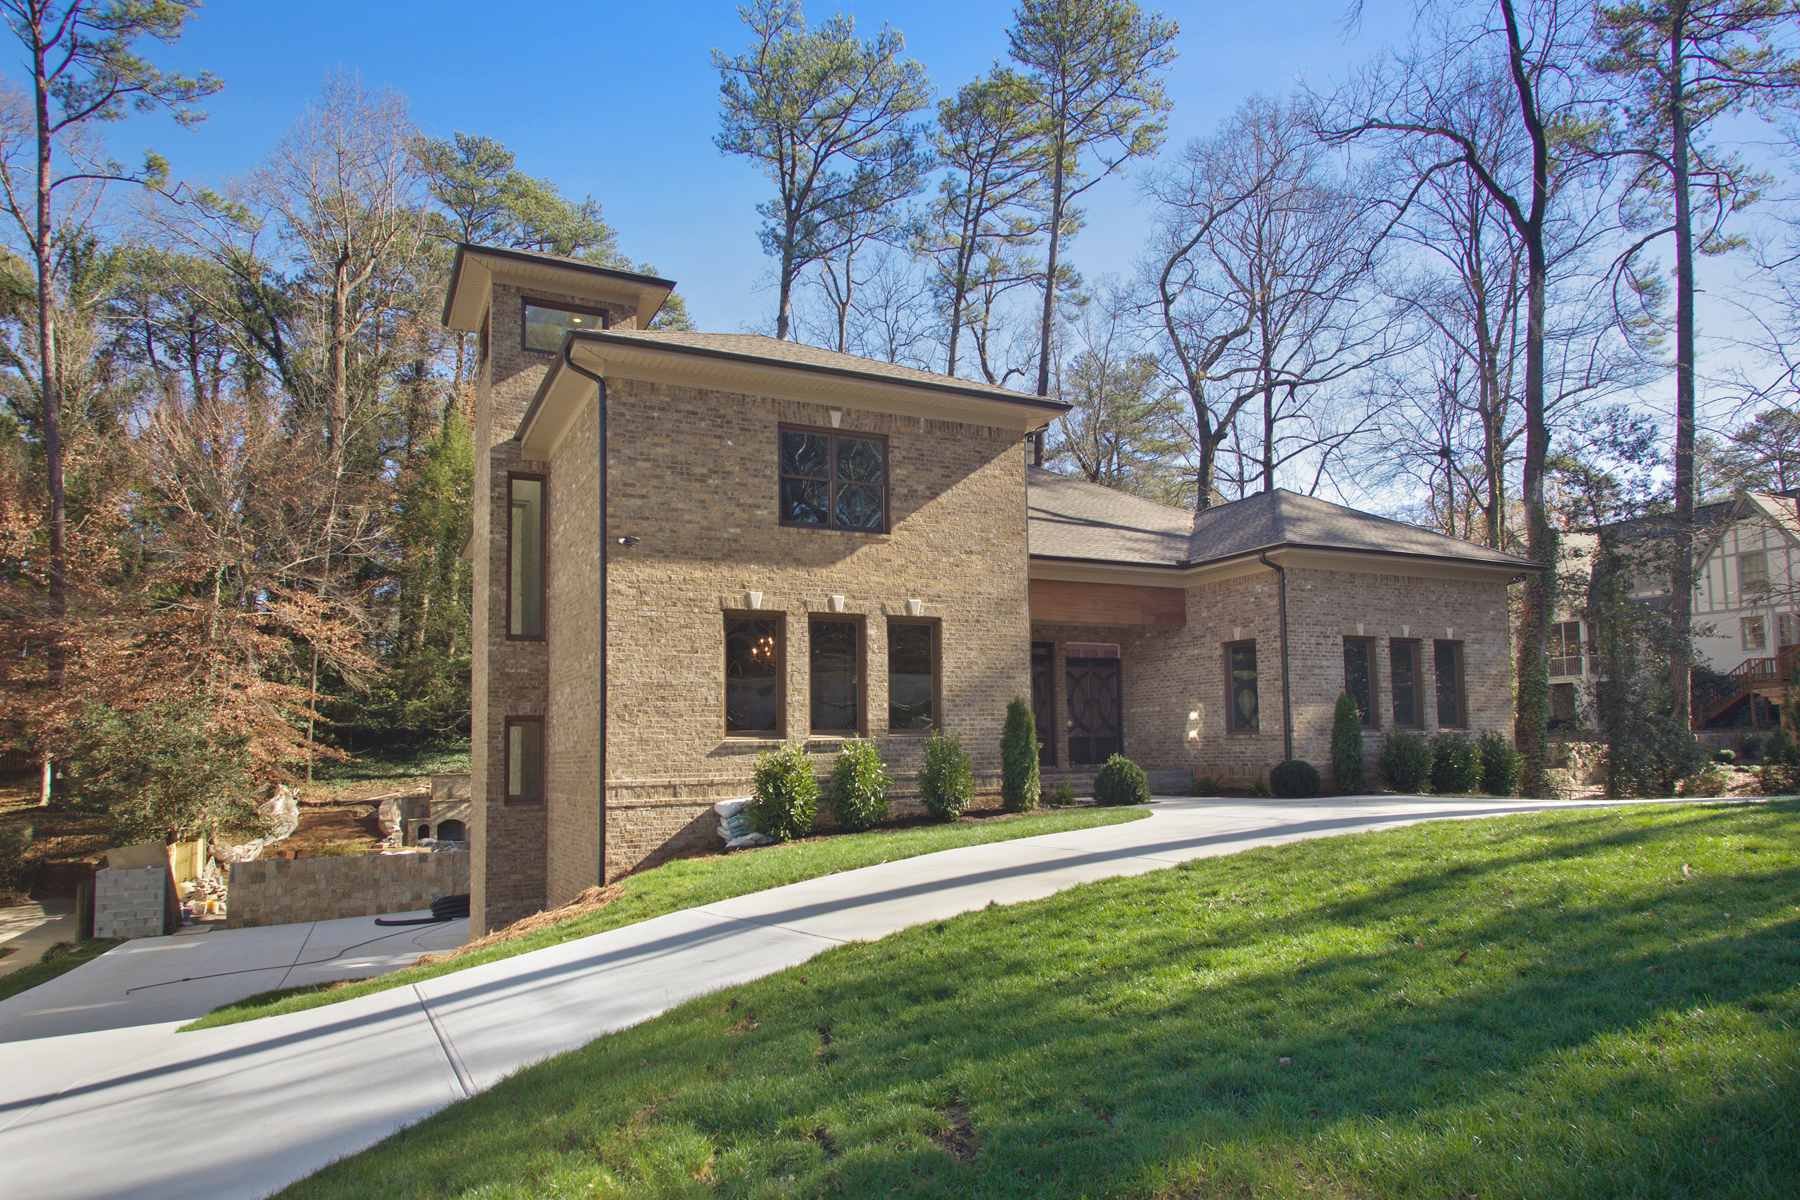 Vivienda unifamiliar por un Venta en Sprawling New Home In Morningside With Resort-style Backyard 1801 Wellbourne Drive NE Morningside, Atlanta, Georgia 30324 Estados Unidos